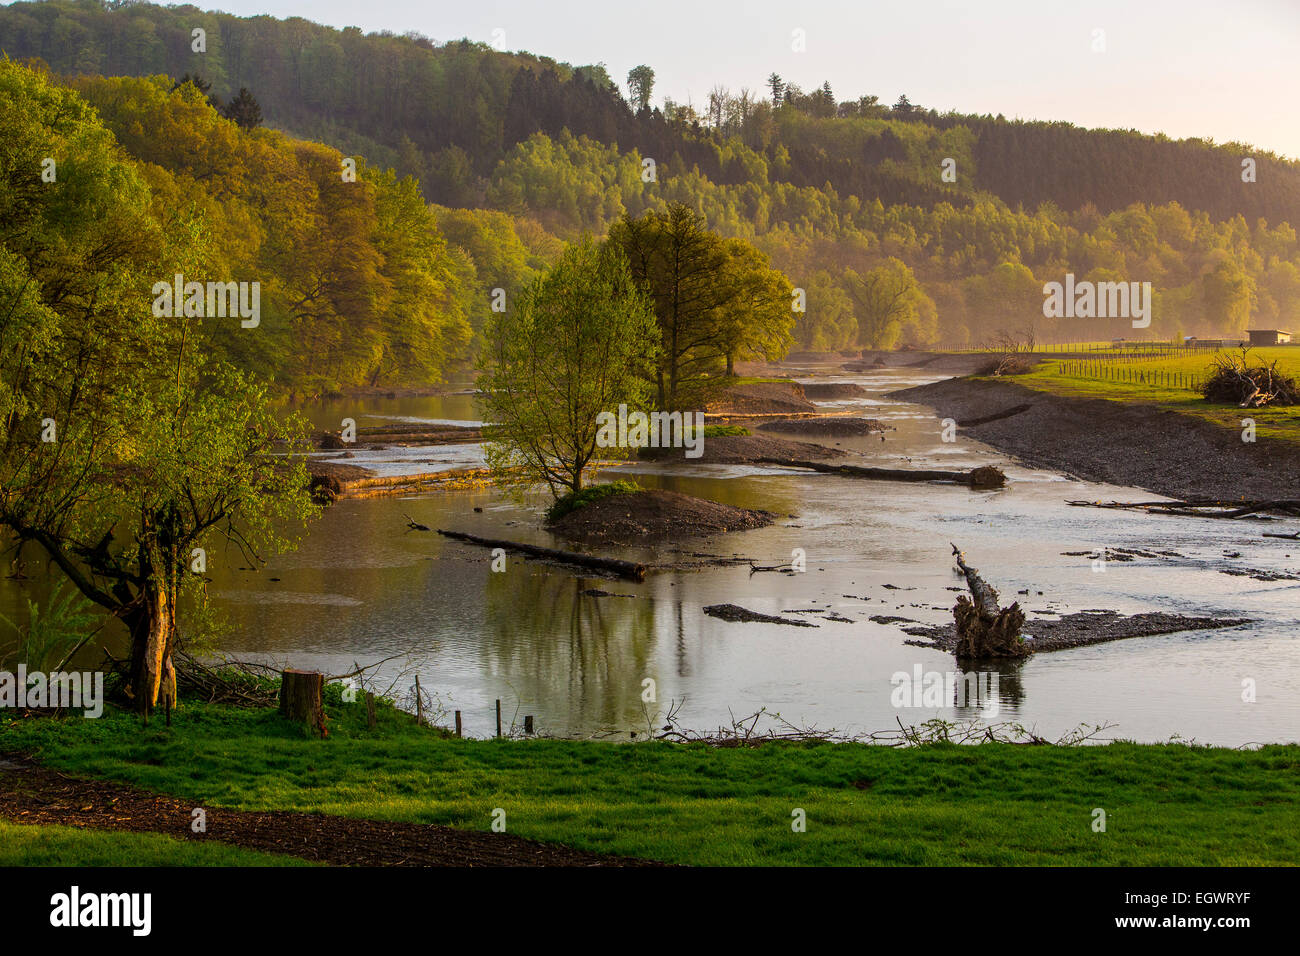 Renaturation part of river Ruhr, rebuild in the way the river was in its origin, nature preserve, landscape protection Stock Photo